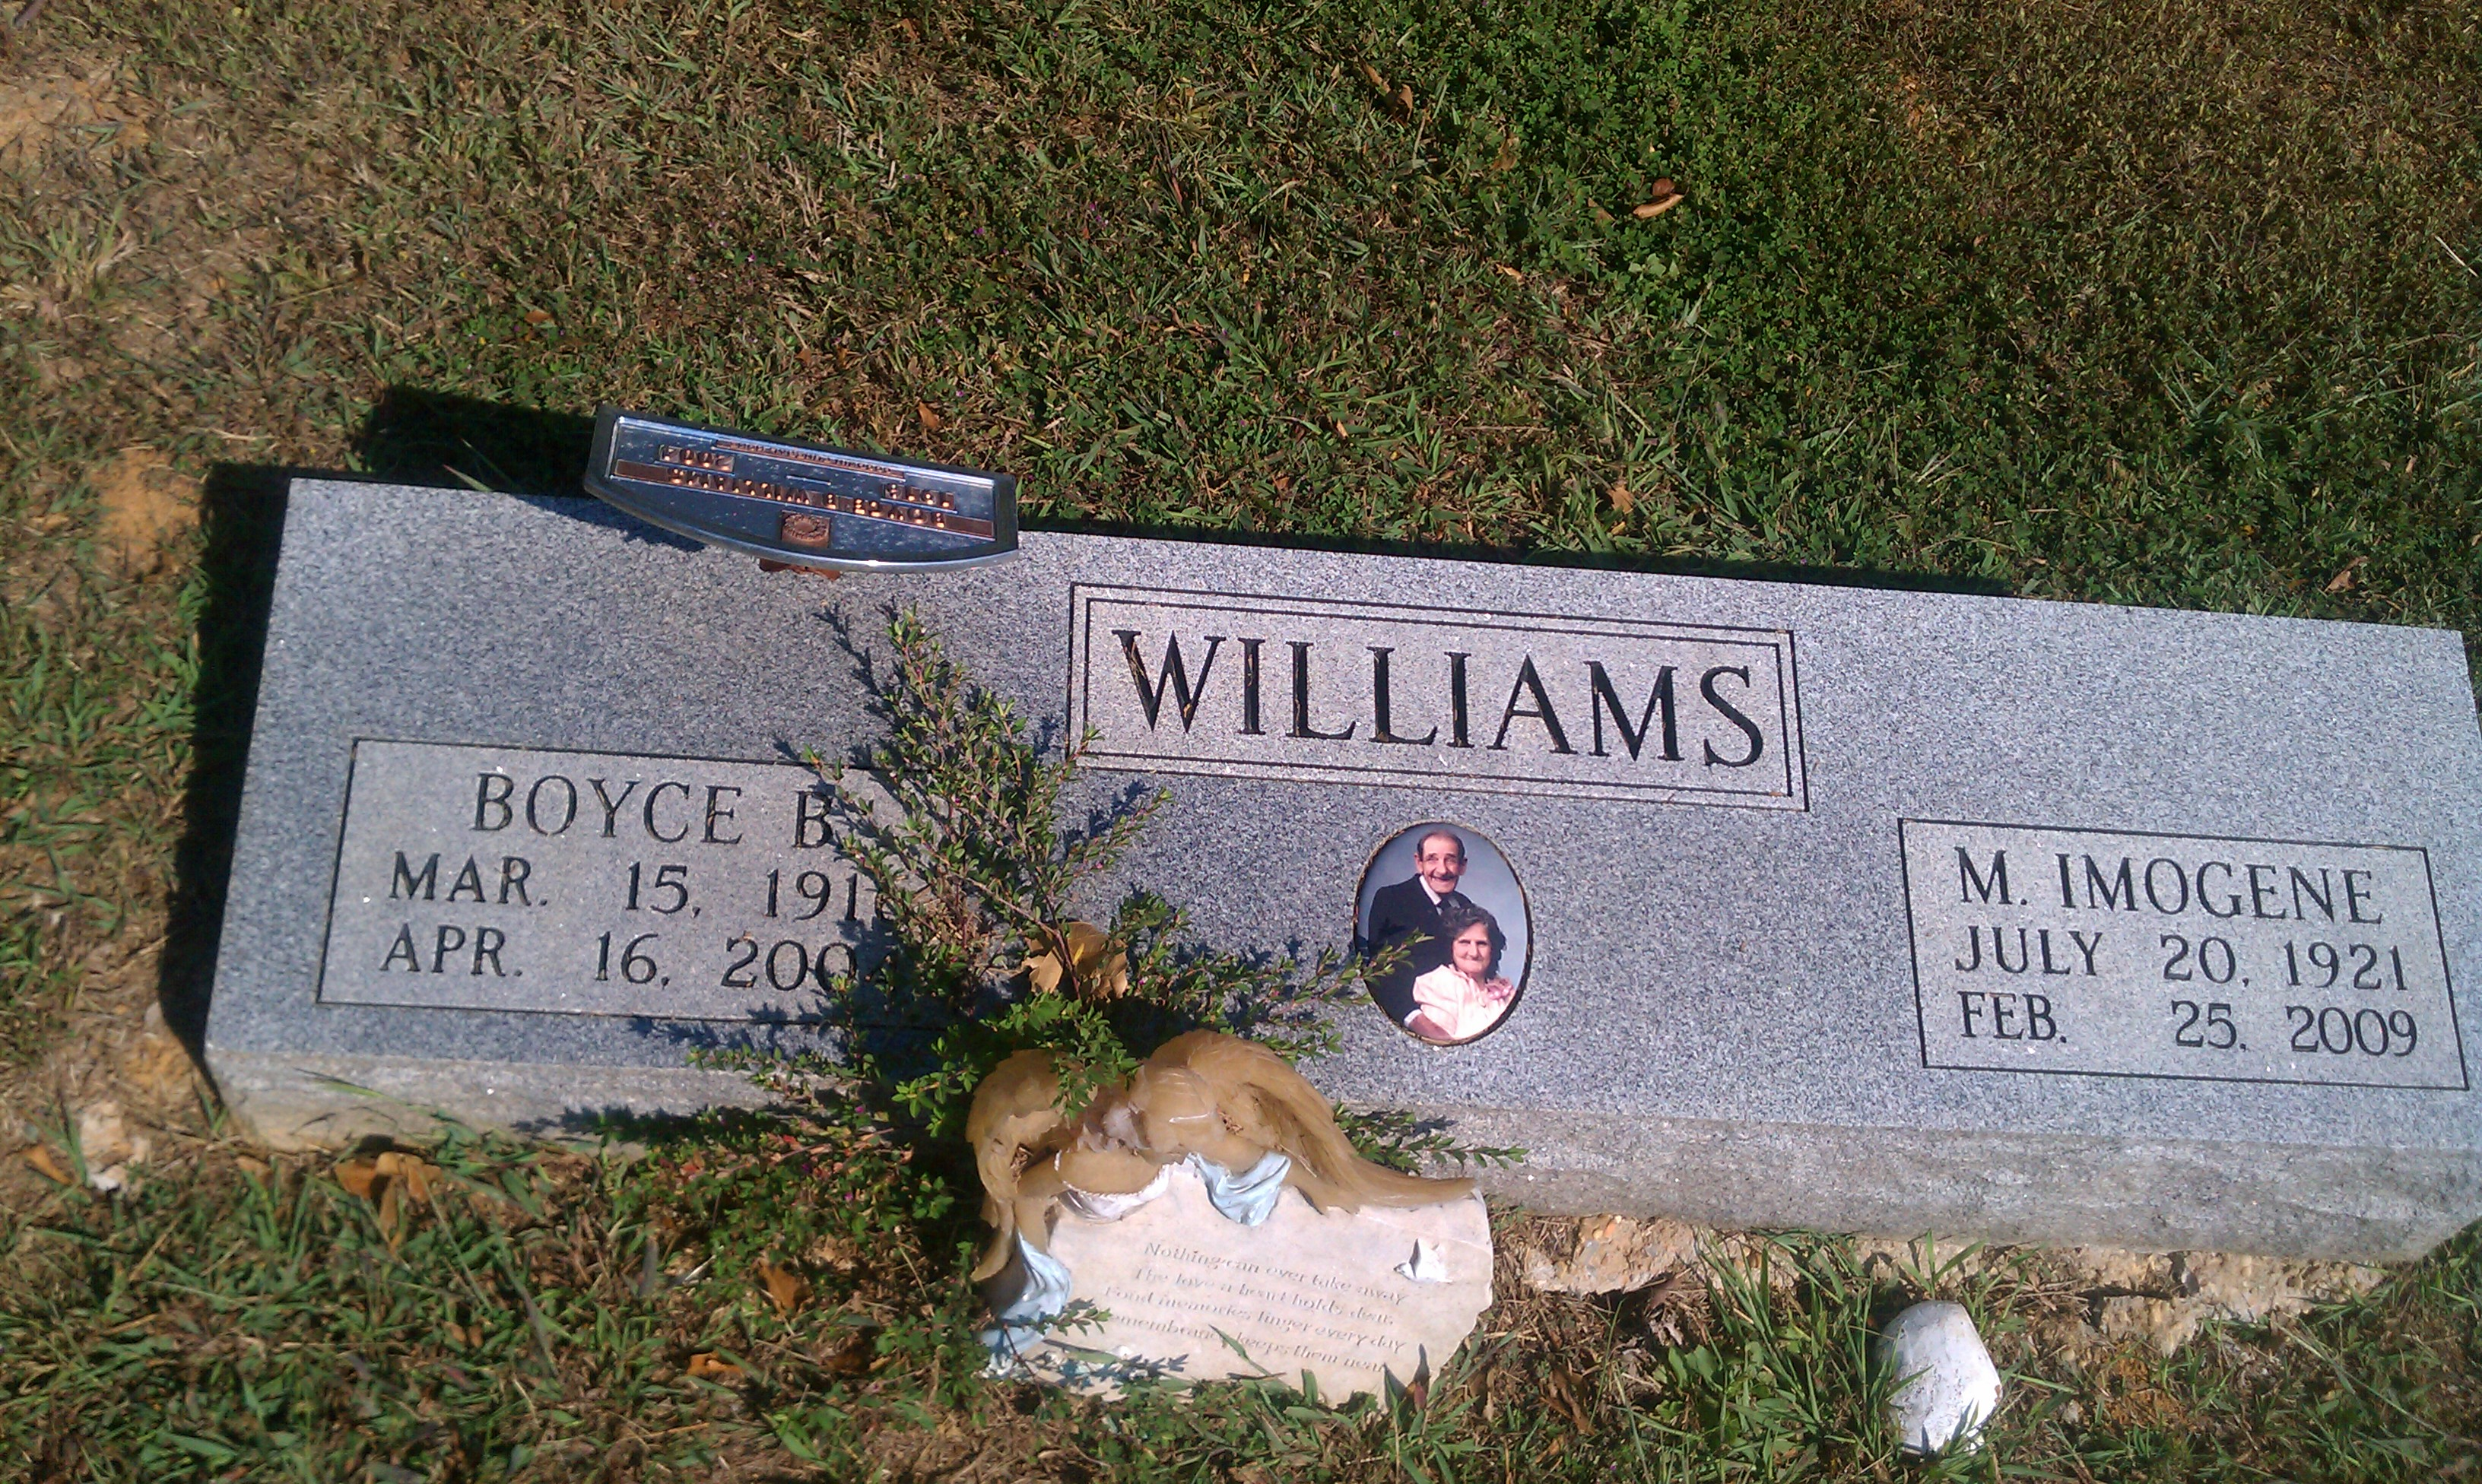 Boyce B Williams